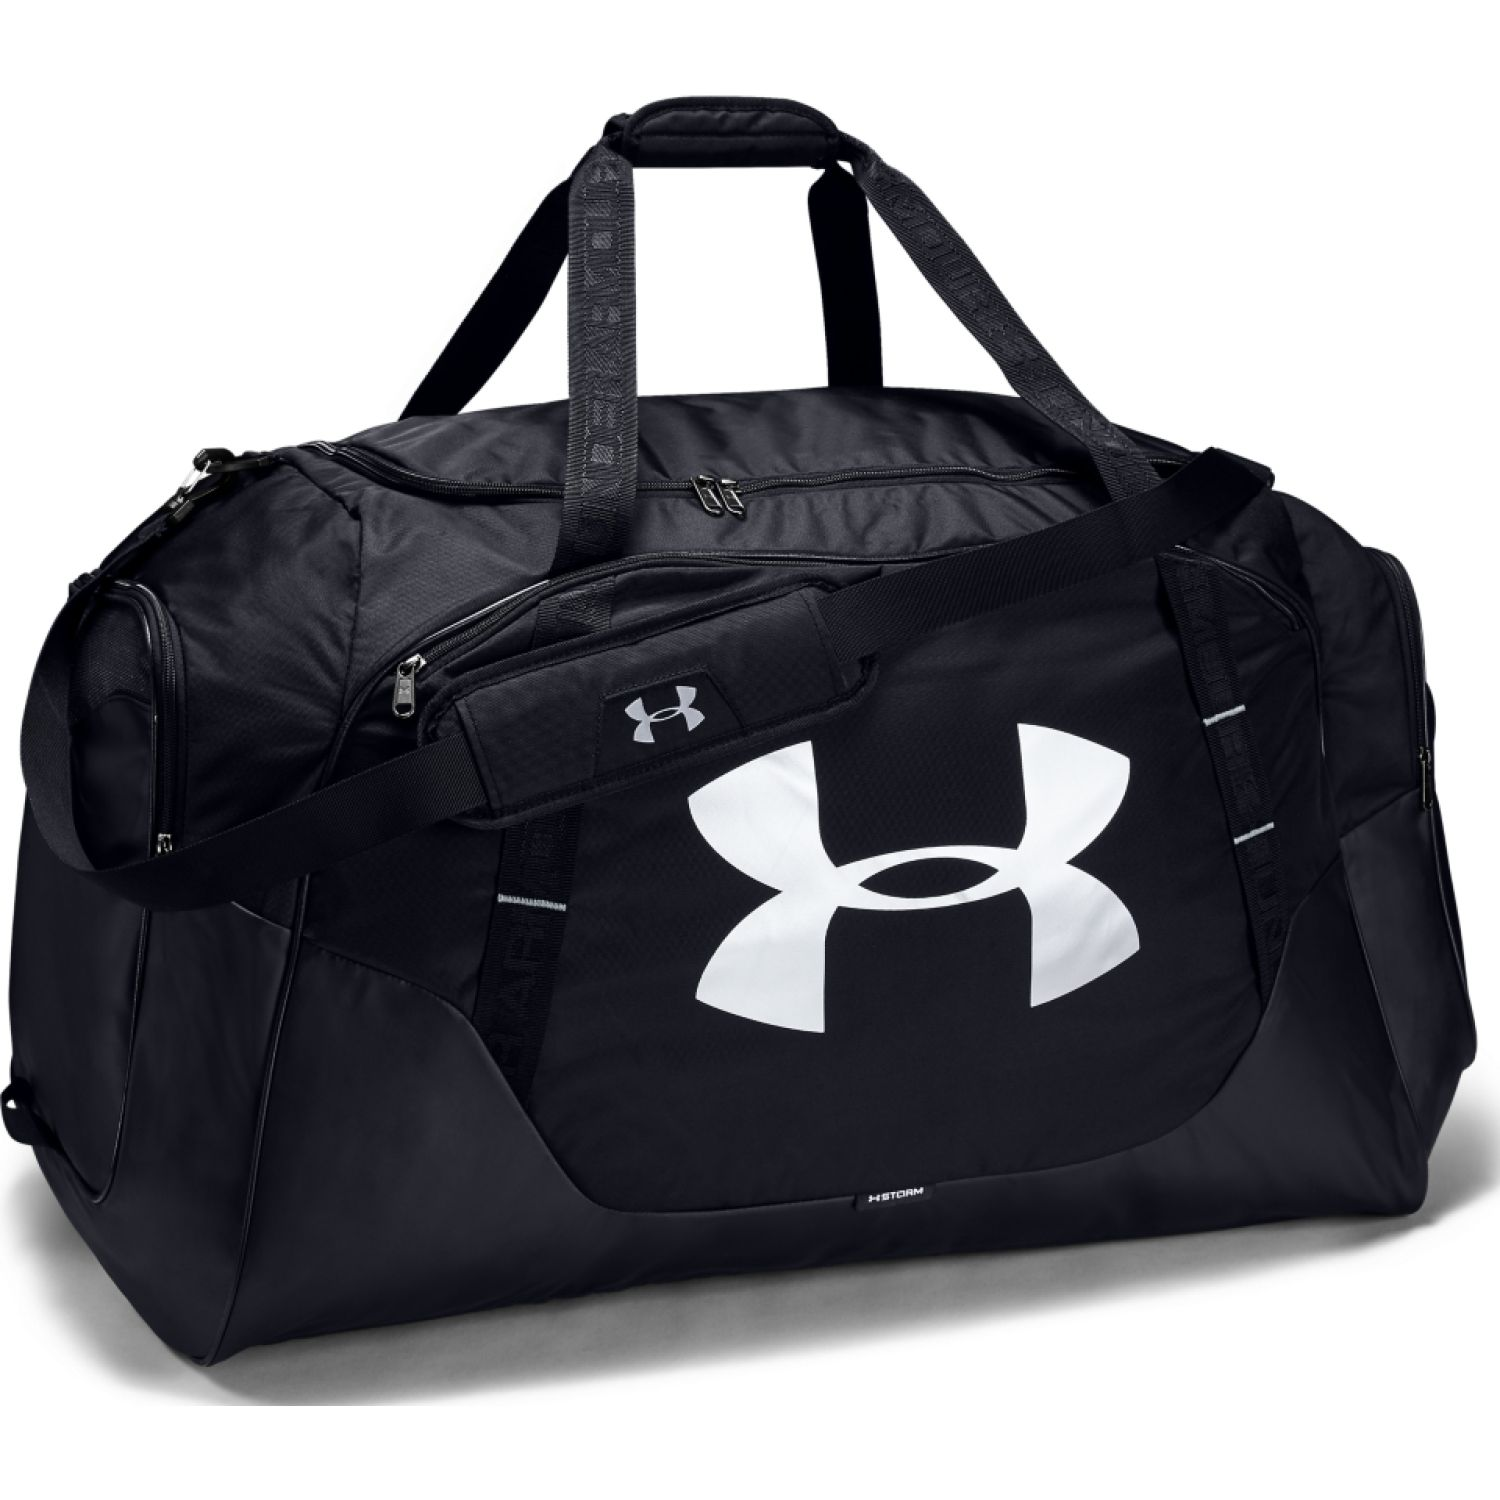 Under Armour ua undeniable duffle 3.0 xl Negro Bolsos de gimnasio